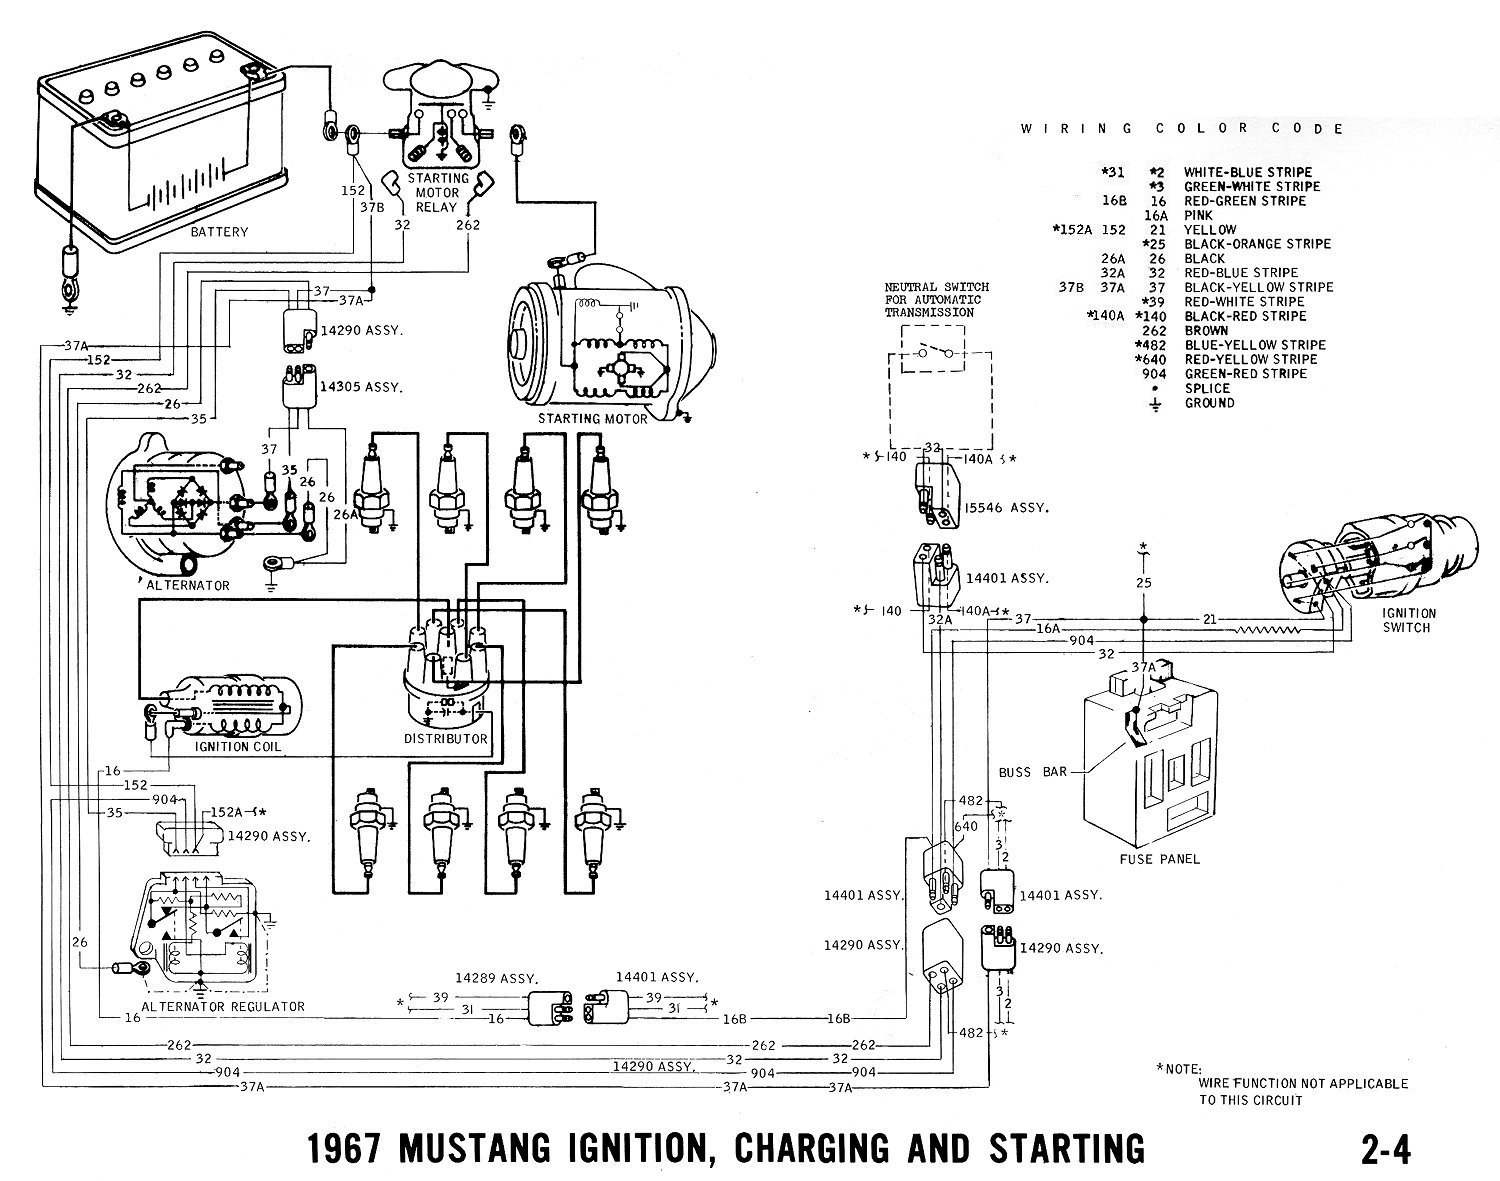 1970 ford mustang alternator wiring diagram wiring diagram database 4 wire alternator wiring diagram 1973 ford mustang wiring diagram wiring diagram database 1967 ford mustang alternator wiring diagram 1970 ford mustang alternator wiring diagram